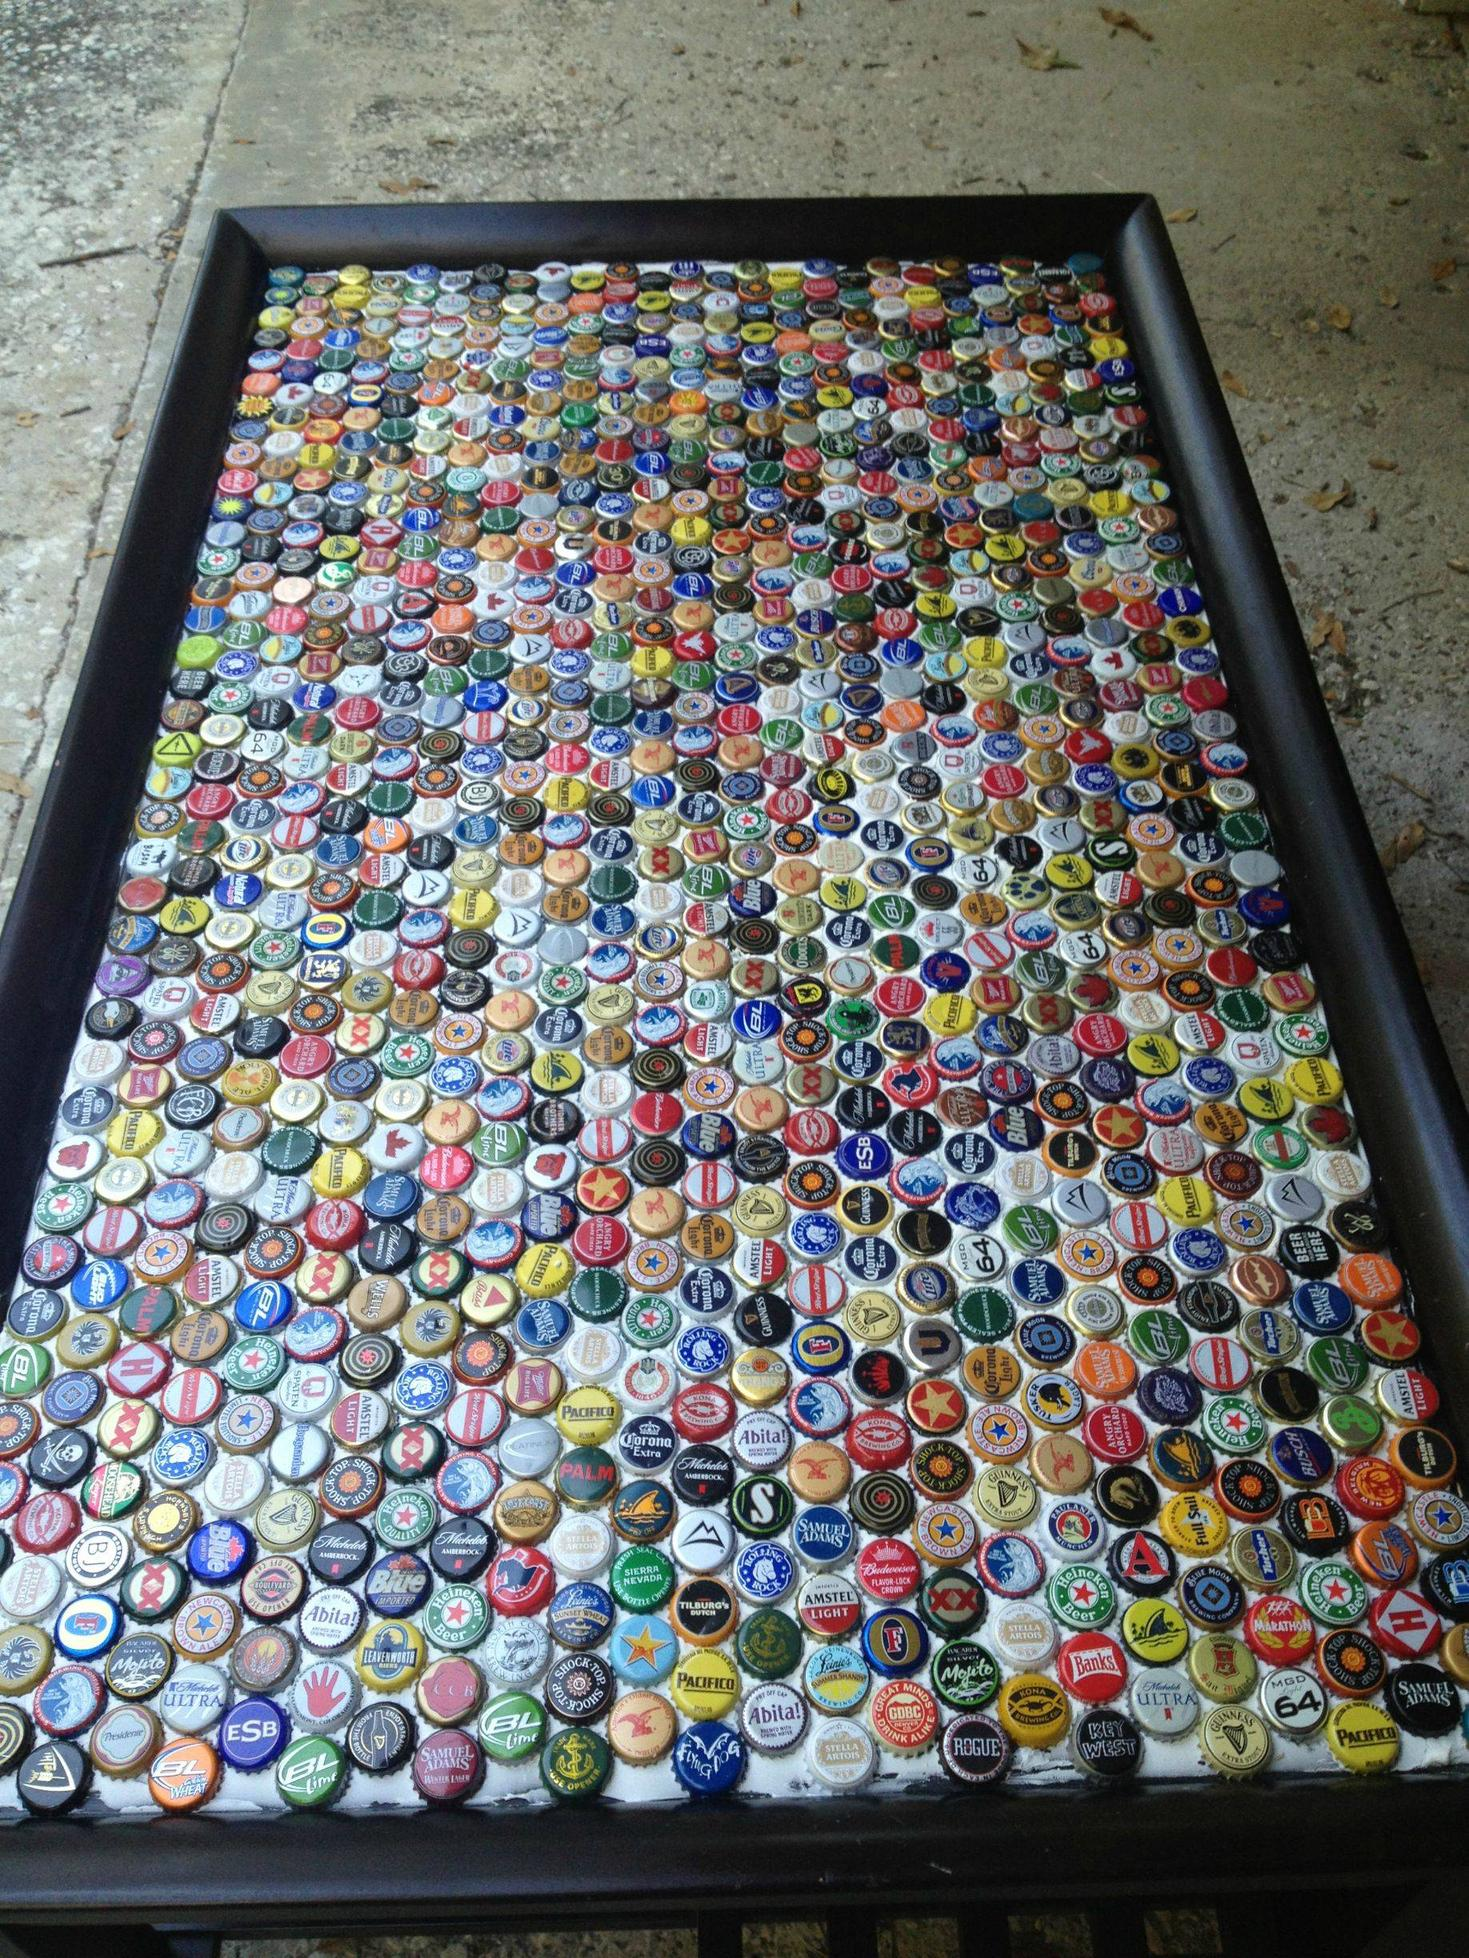 18 DIY Beer Bottle Cap Table Designs